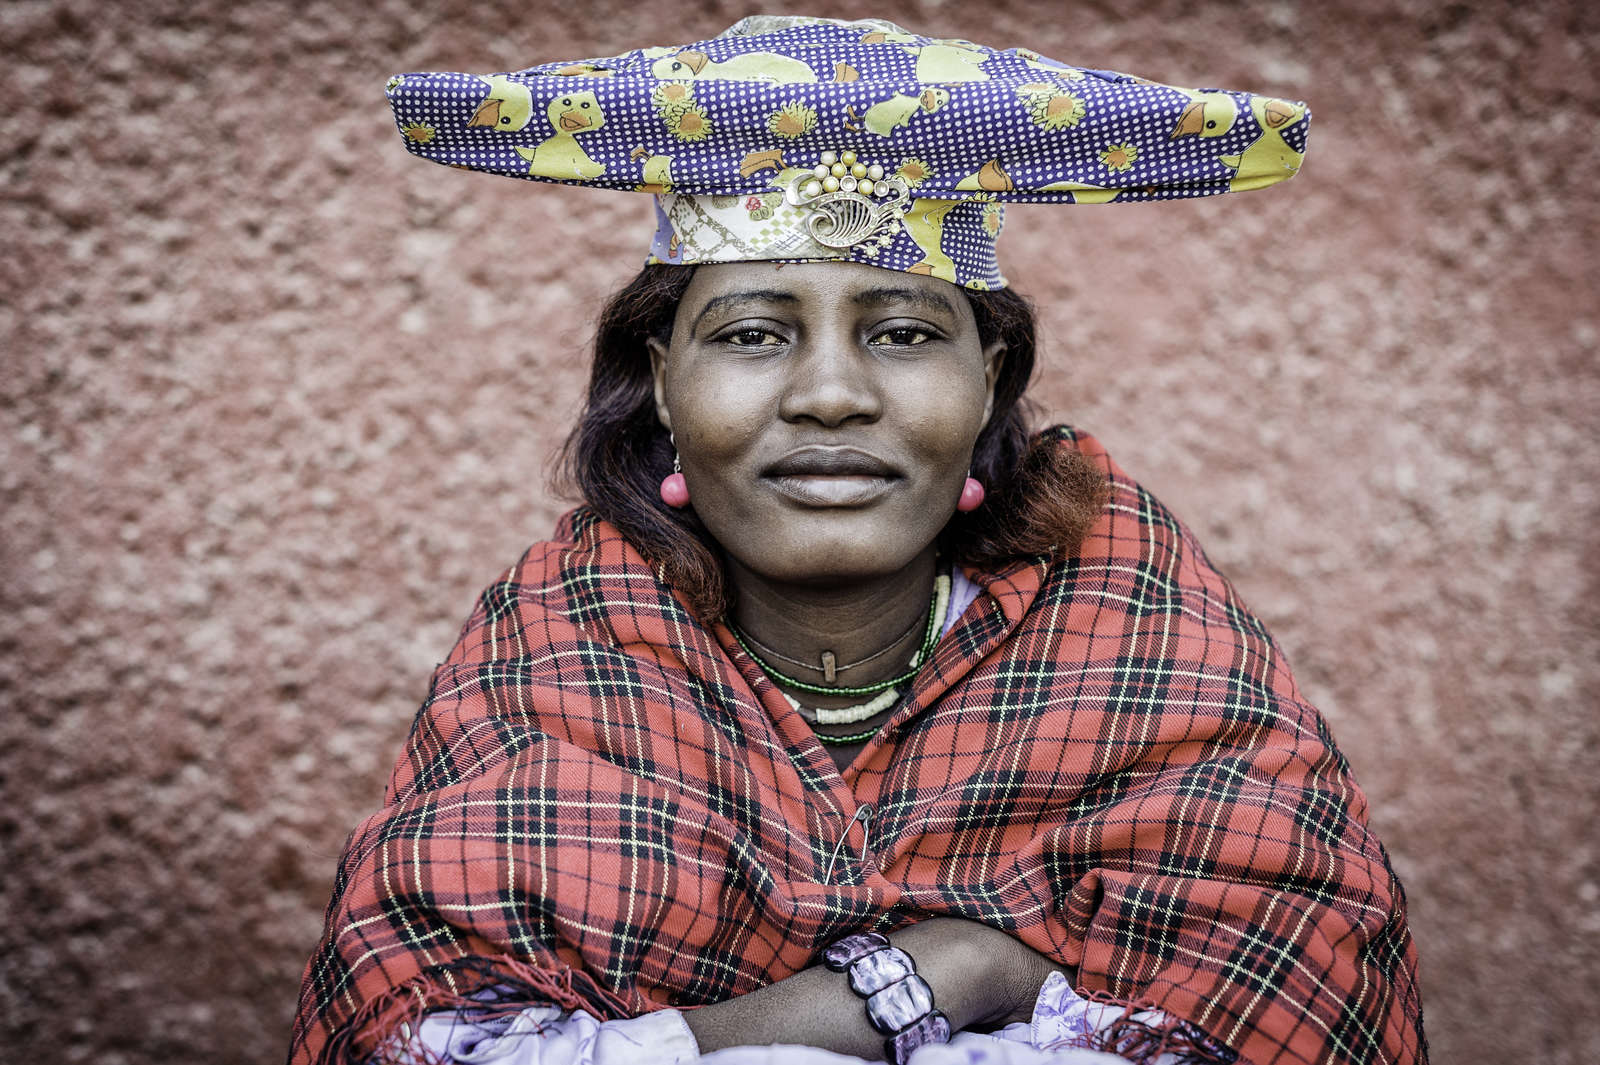 Portrait photography from Africa